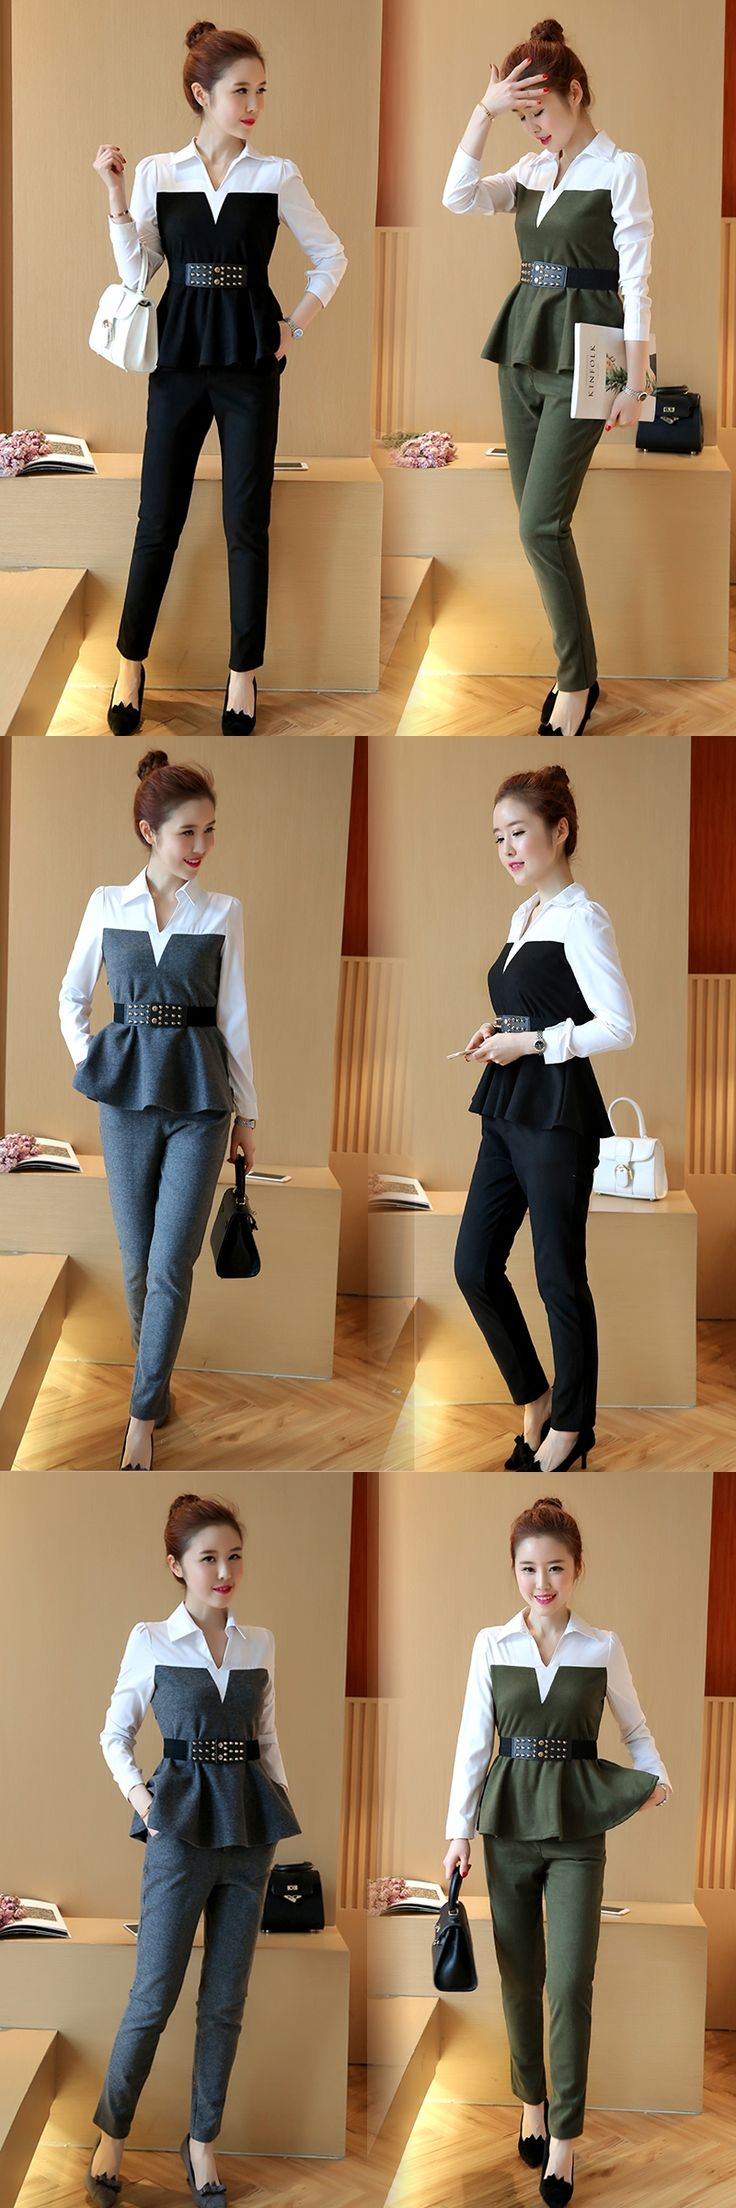 Korean Fashion 2017 Spring Women Patchwork Puffles Shirt Slim Pencil Pants Clothing Set Office Suits Trousers Two-Piece Outfit